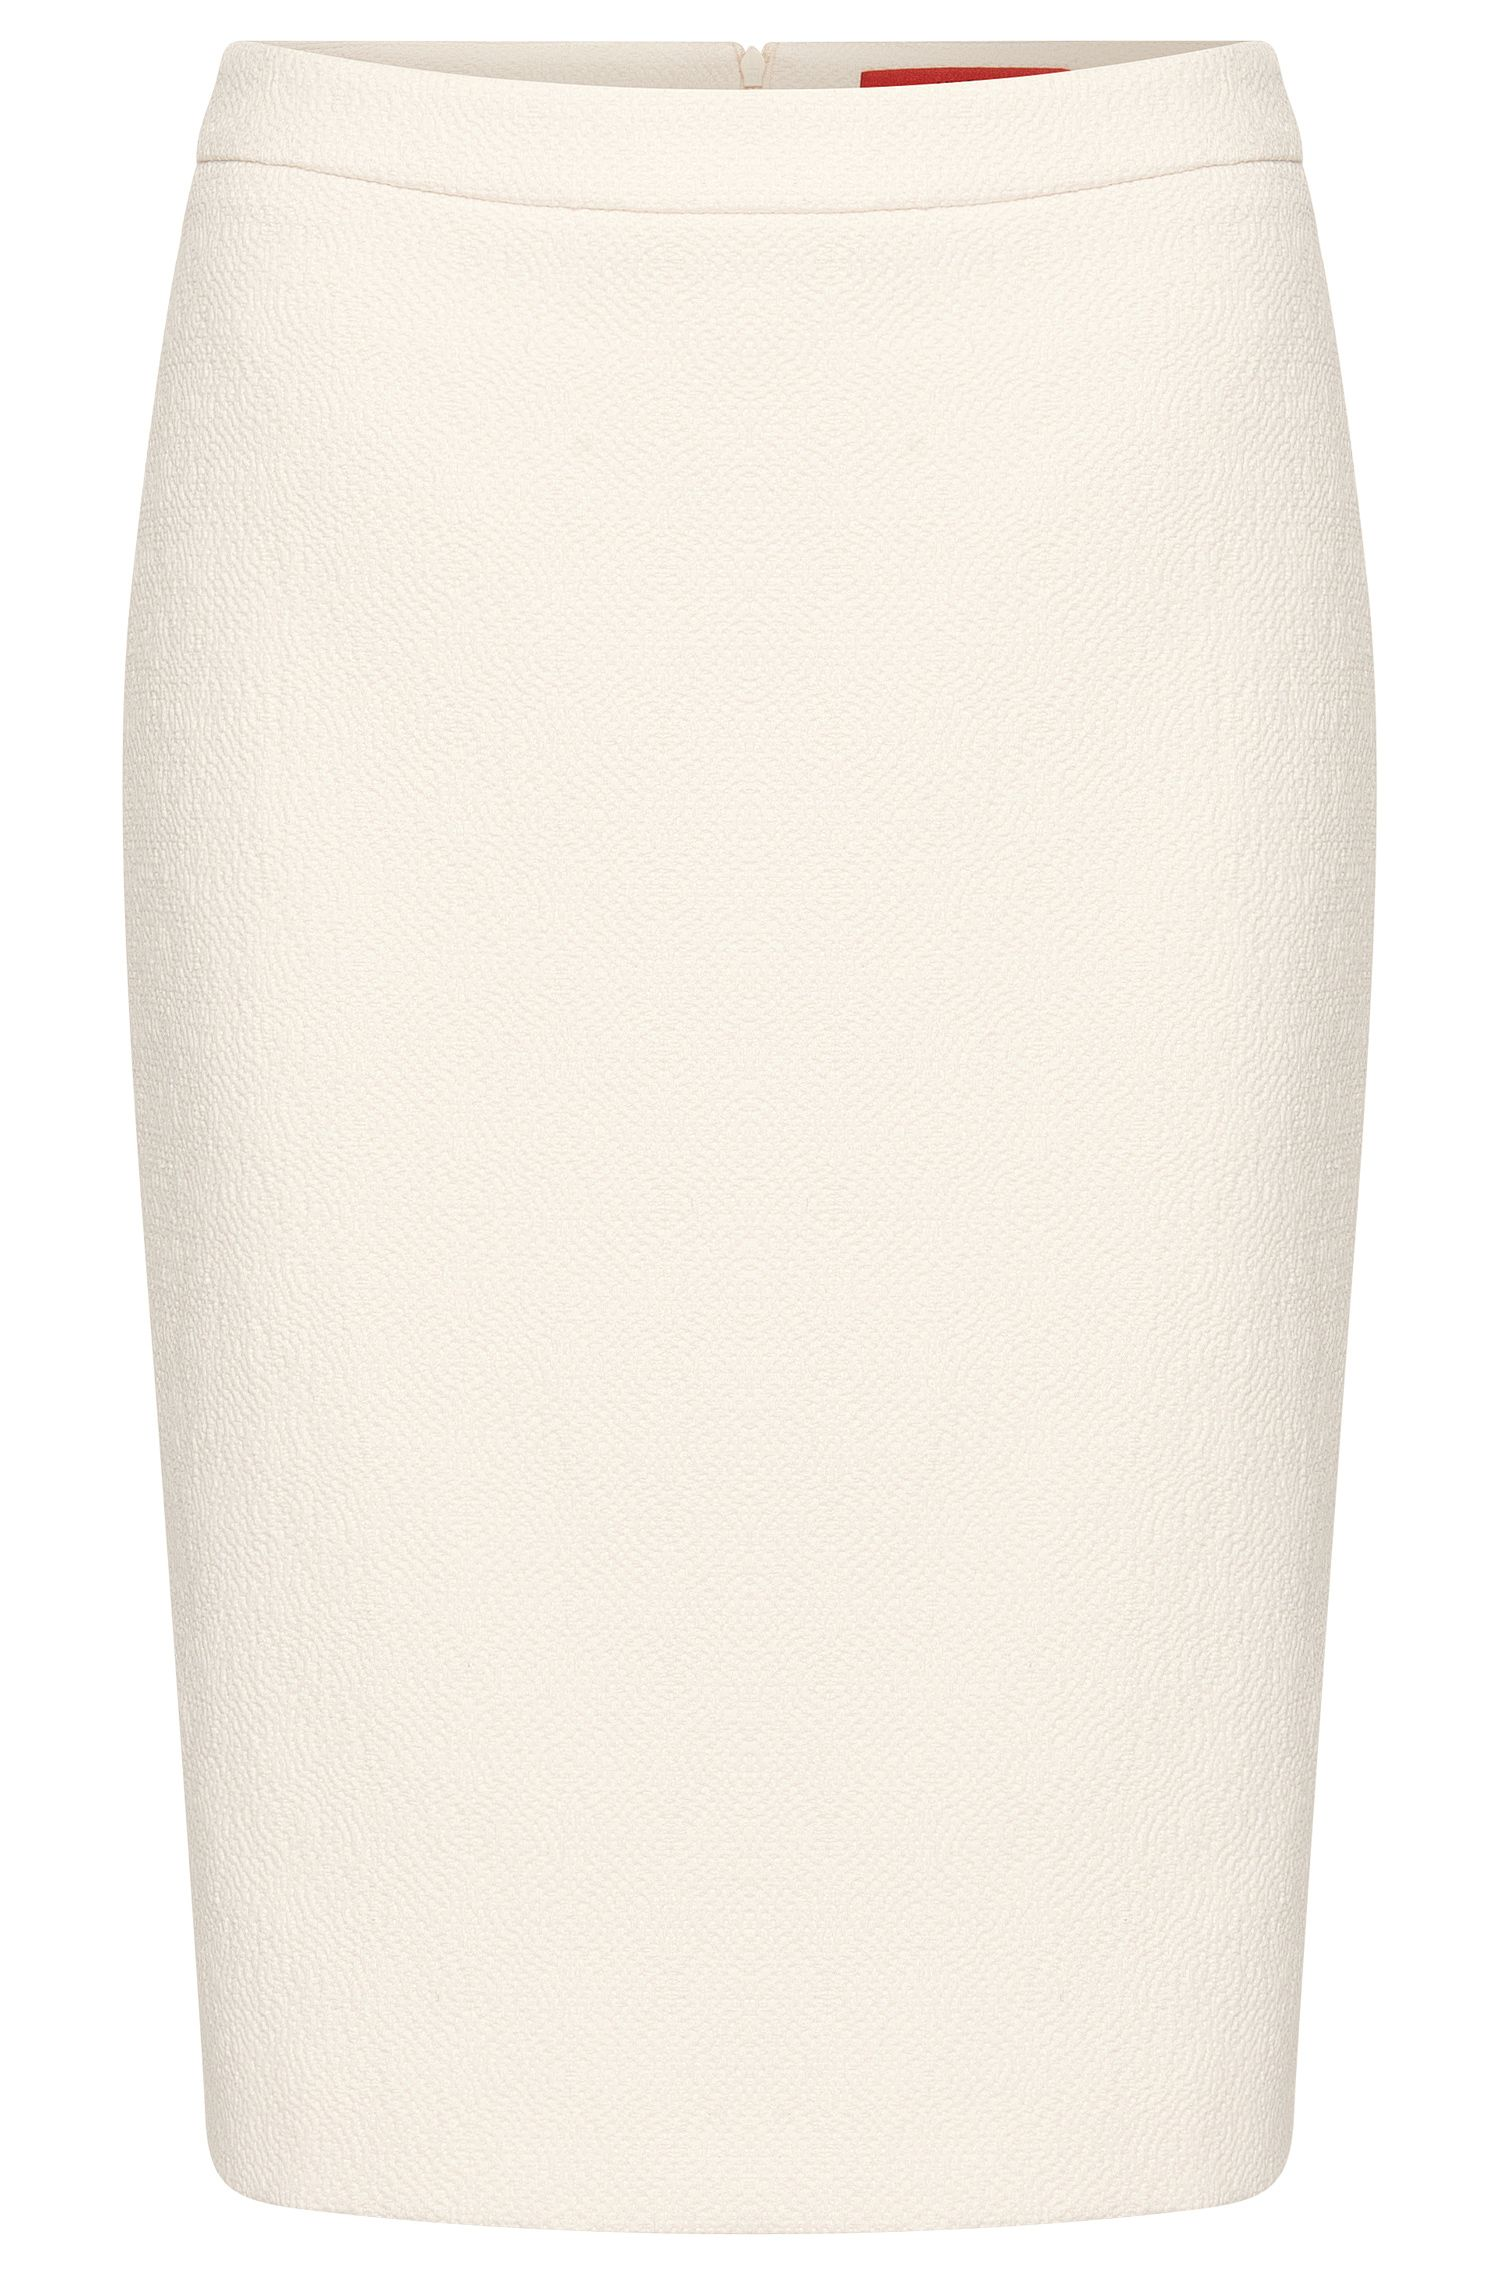 Skirt in a stretchy cotton blend with woven textured pattern: 'Ranine'